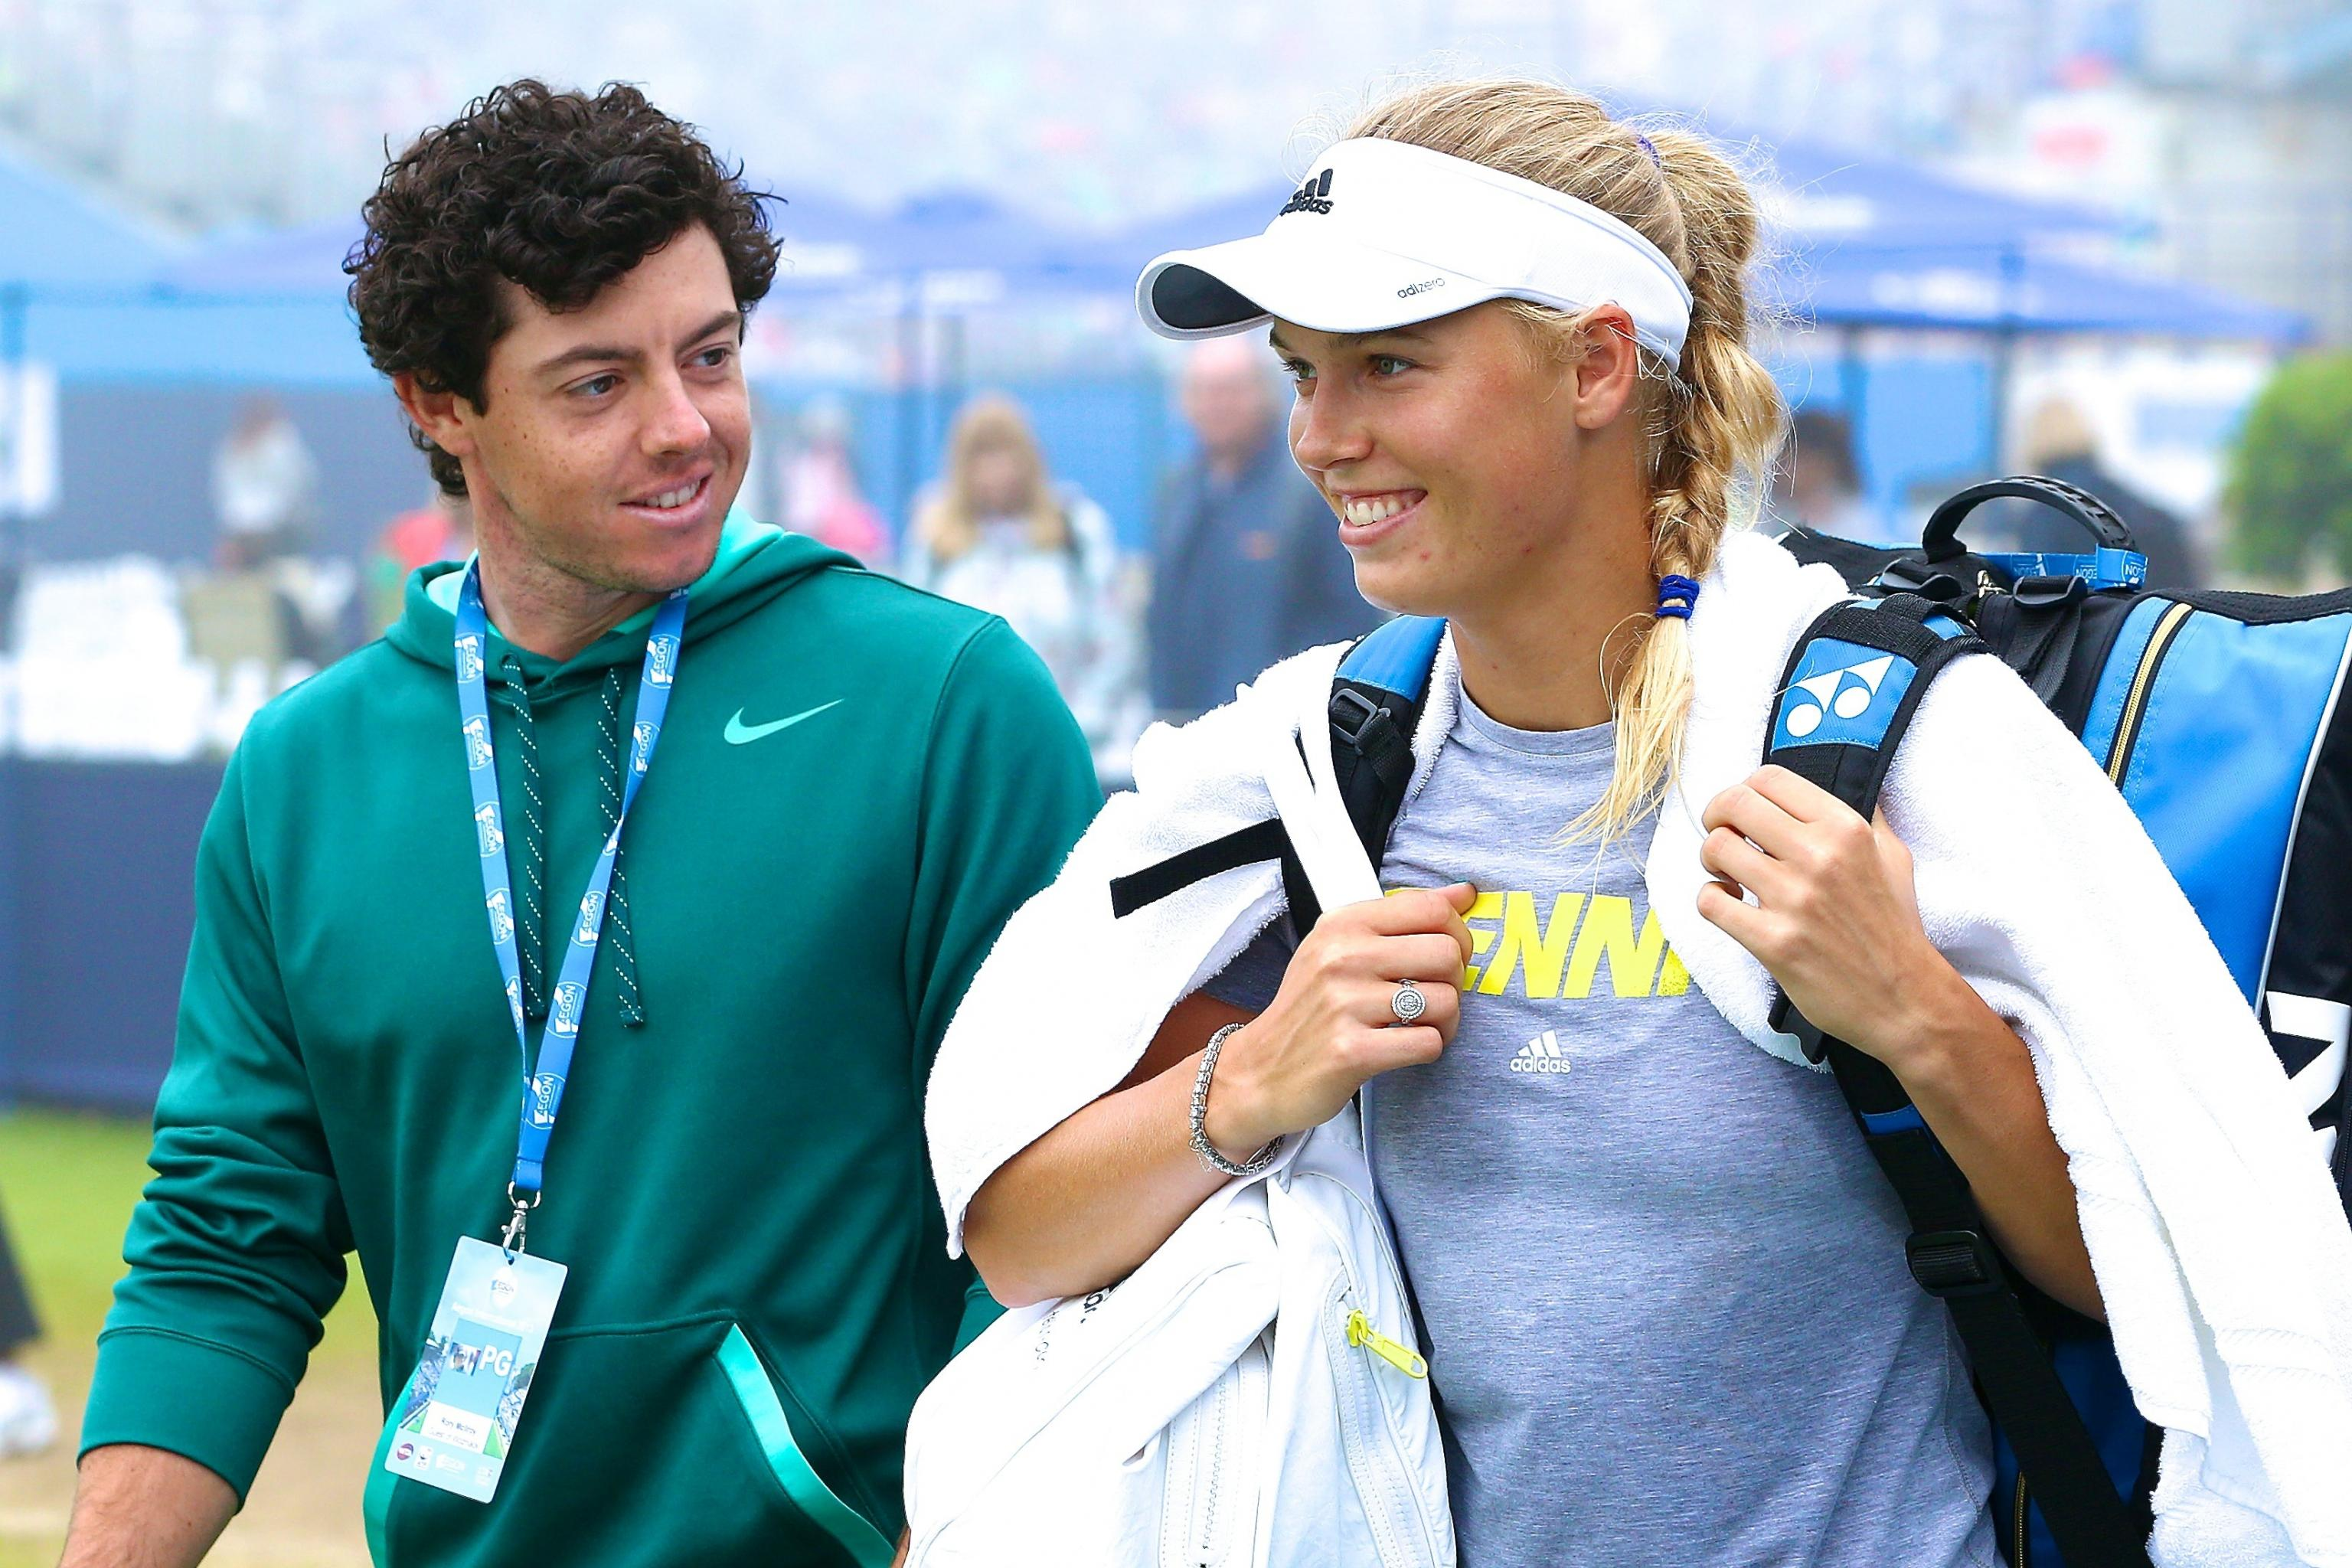 Caroline Wozniacki Announces Engagement To Rory Mcilroy On Twitter Bleacher Report Latest News Videos And Highlights